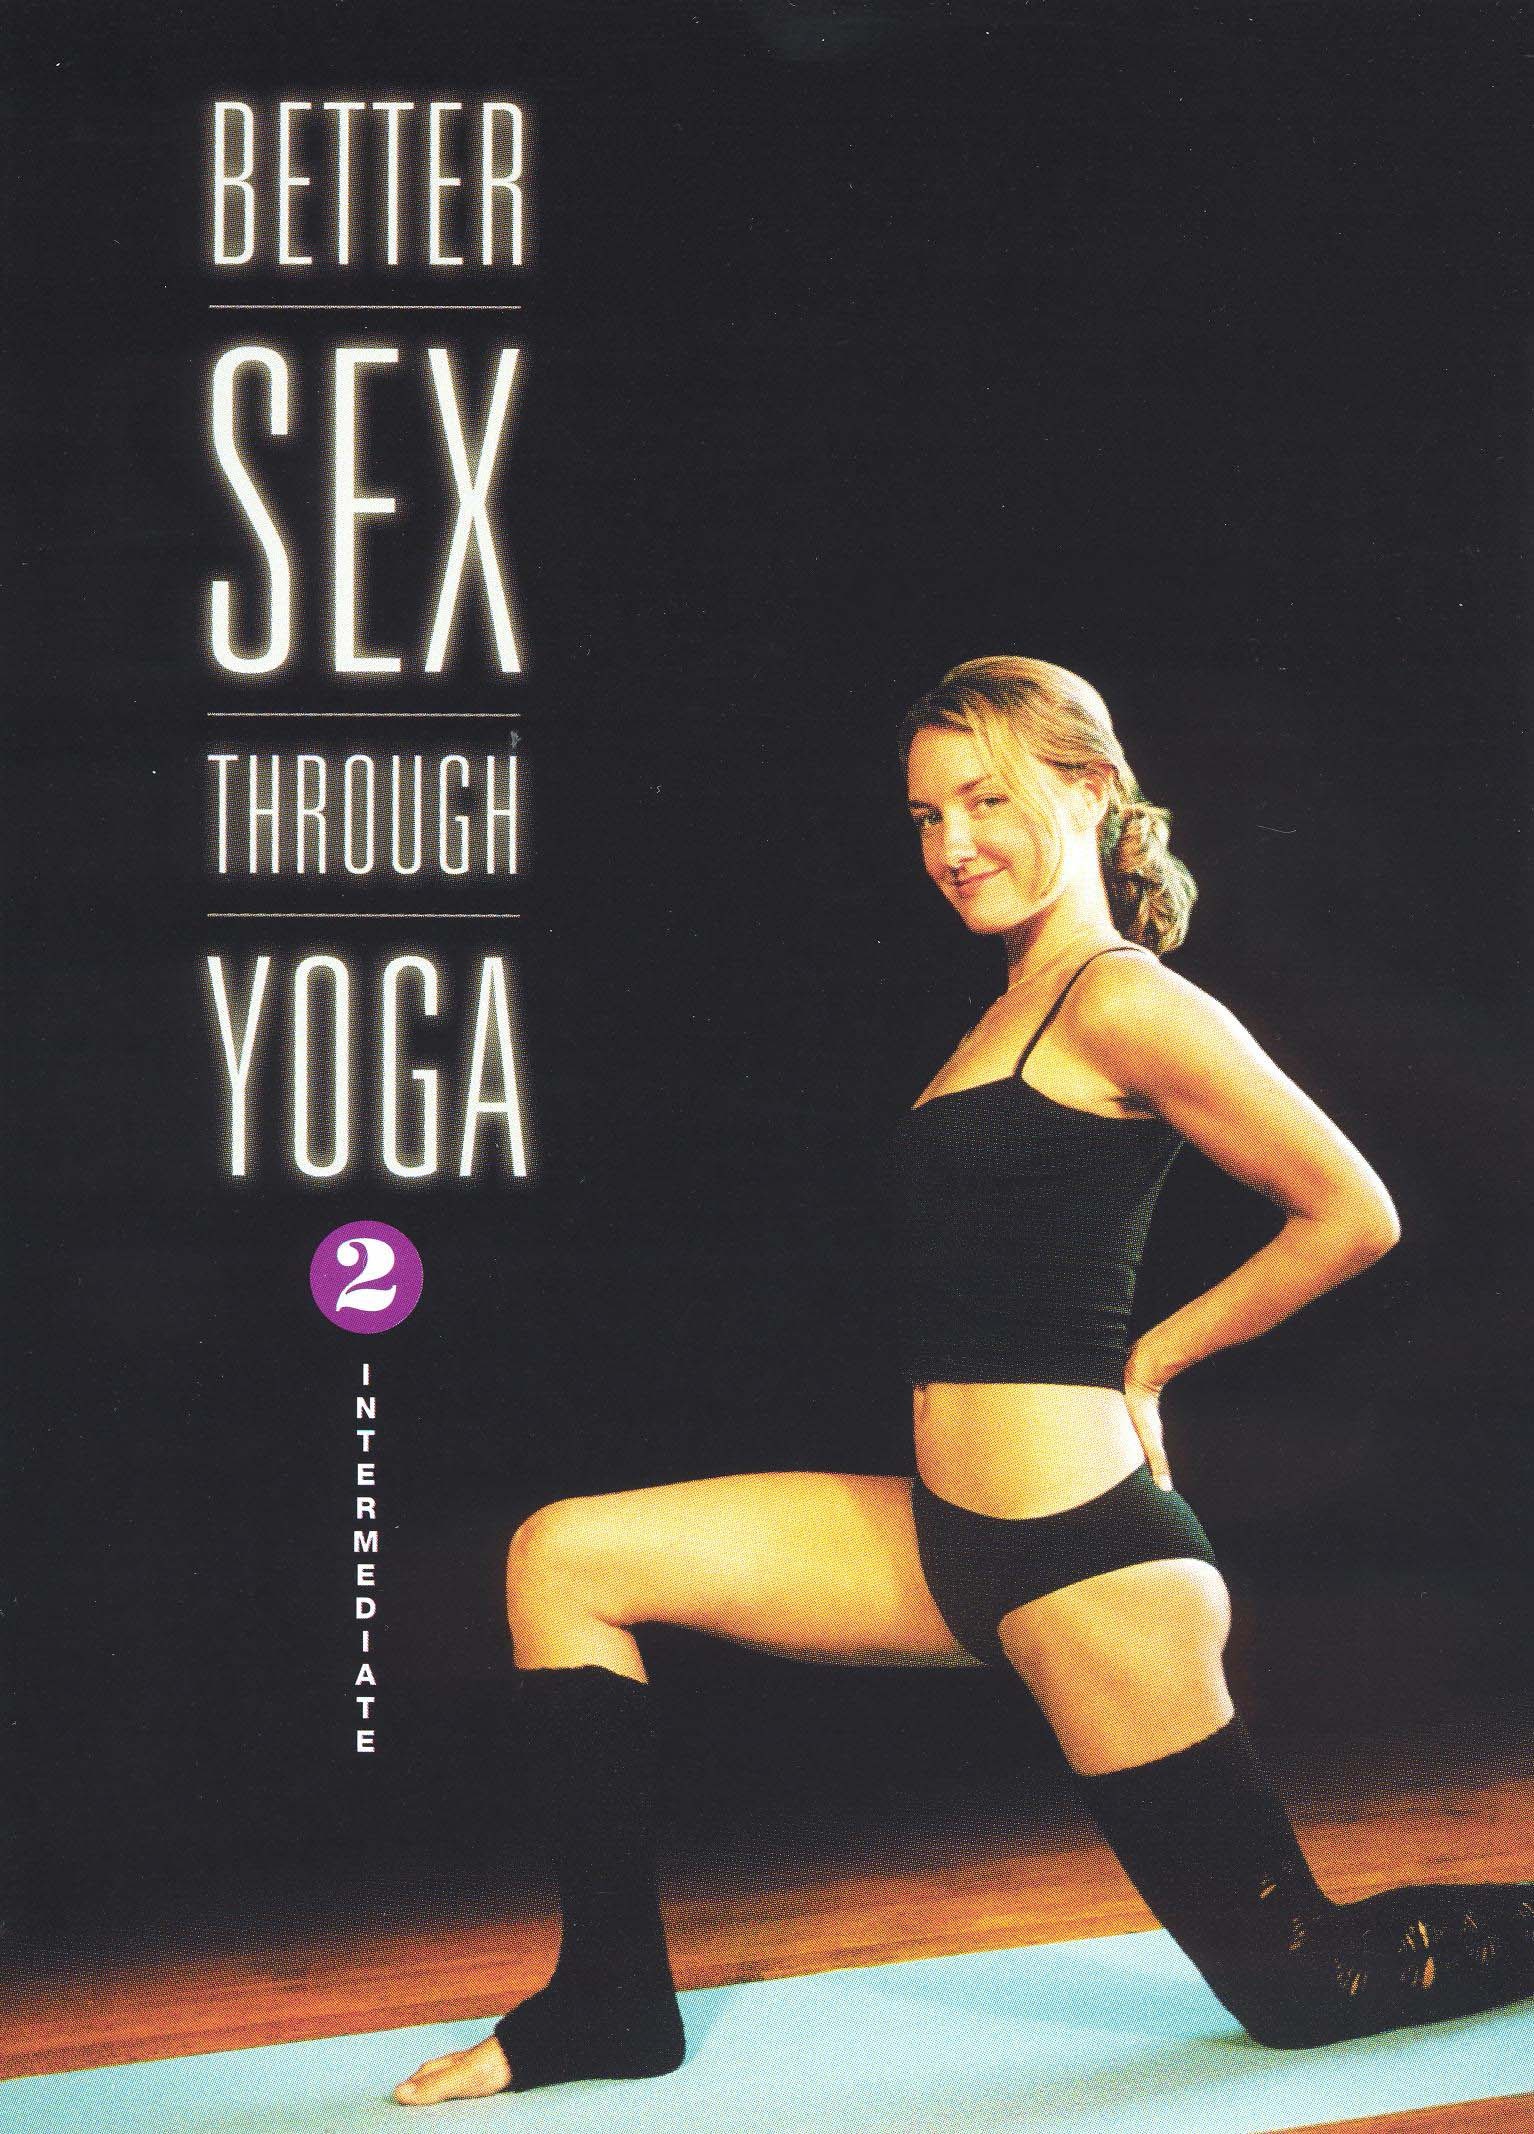 Better Sex Through Yoga, Vol. 2: Intermediate